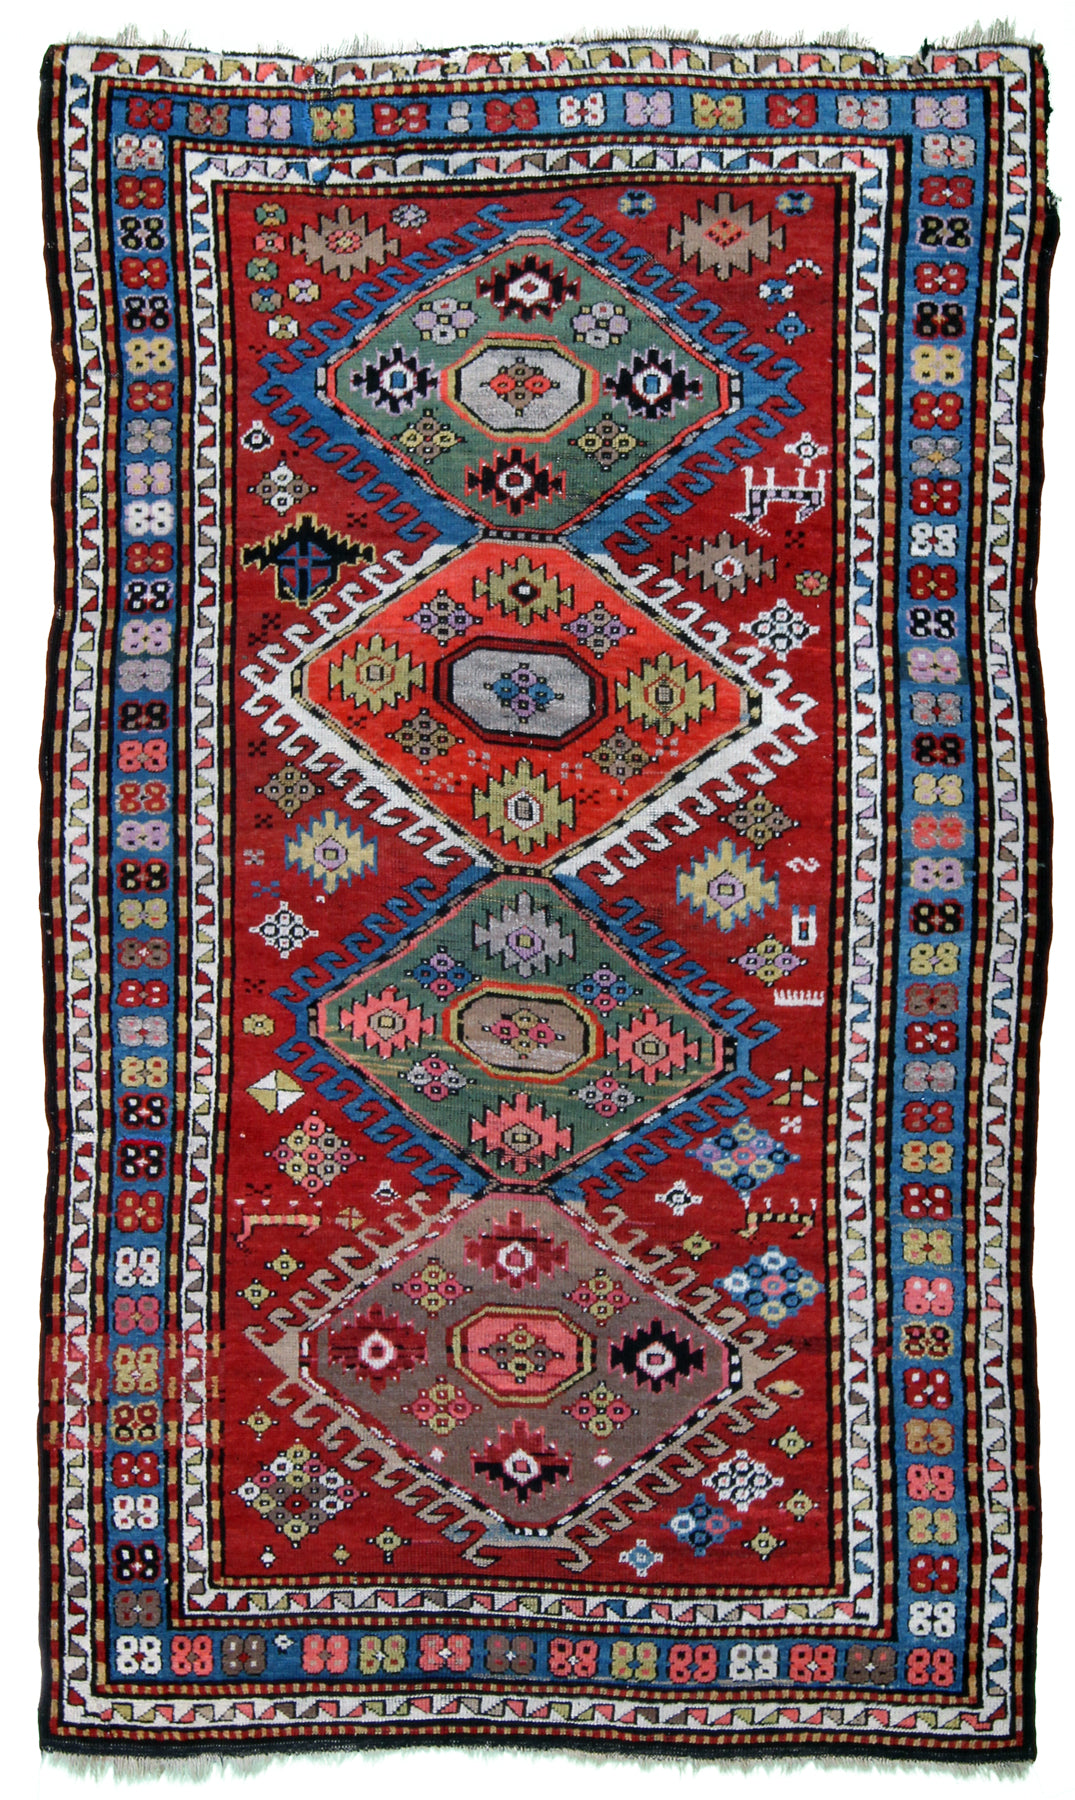 Kazak Antique-Turco Persian Rug Company Inc.